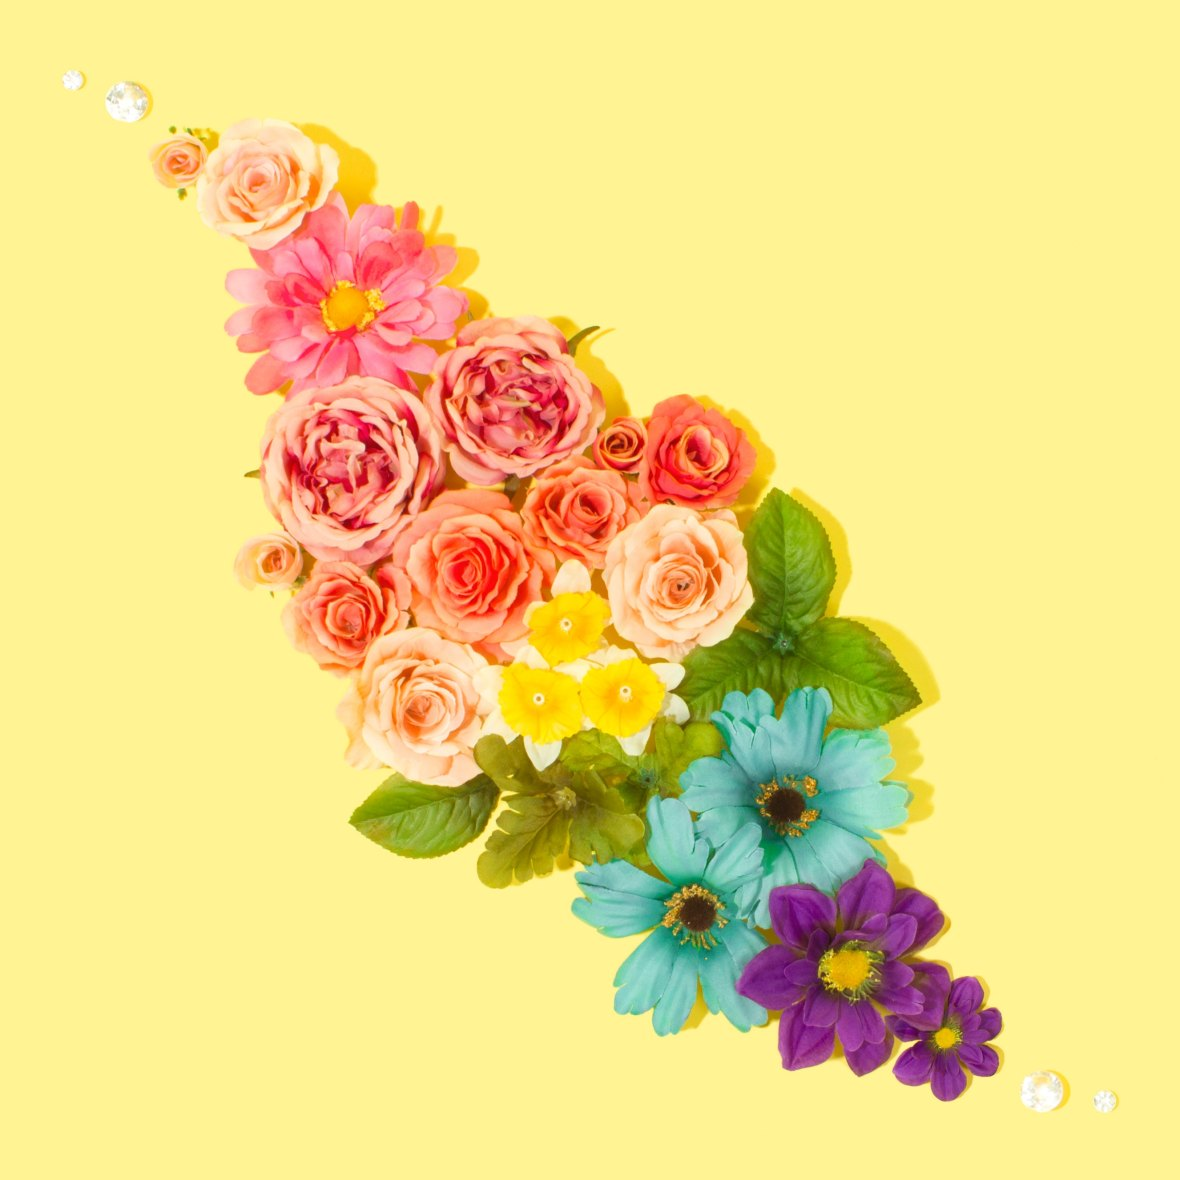 A variety of flowers arranged in rainbow colours from pink, red, yellow, green, blue to purple. The flowers are arranged in a diamond shape on a yellow background.